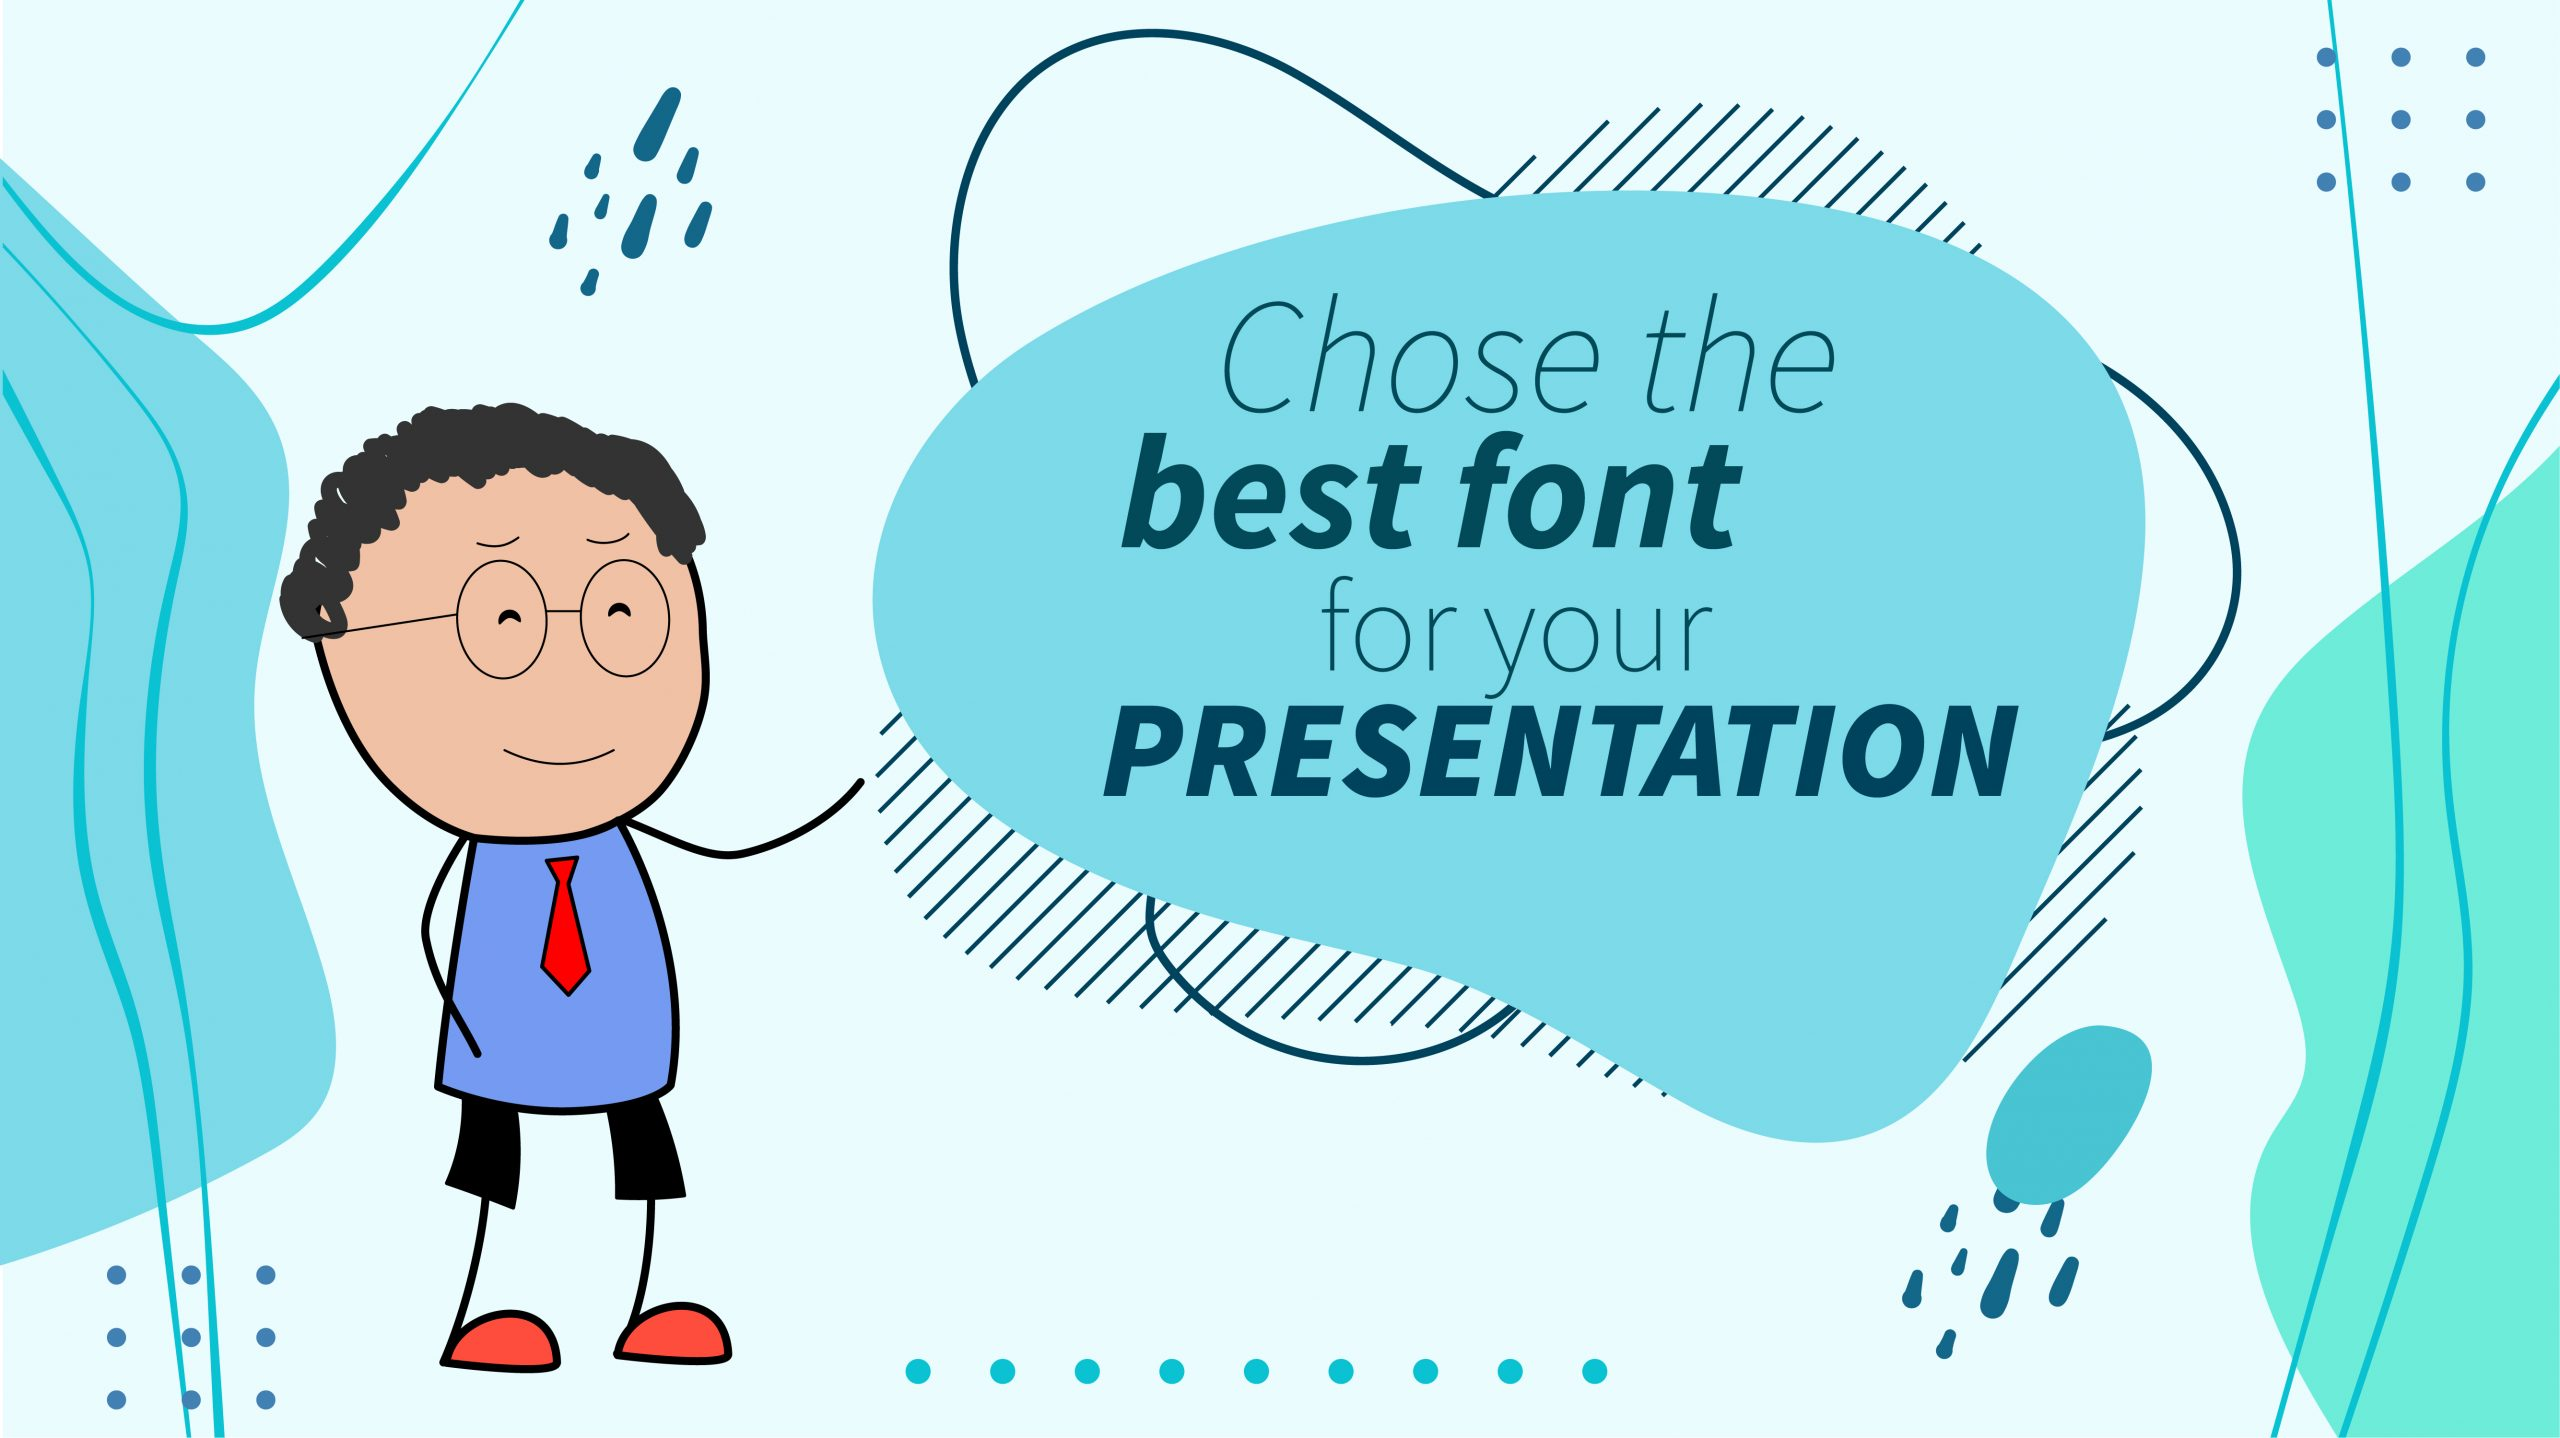 Presentation Secret - Presentation Fonts Matter In Influencing Your Audience